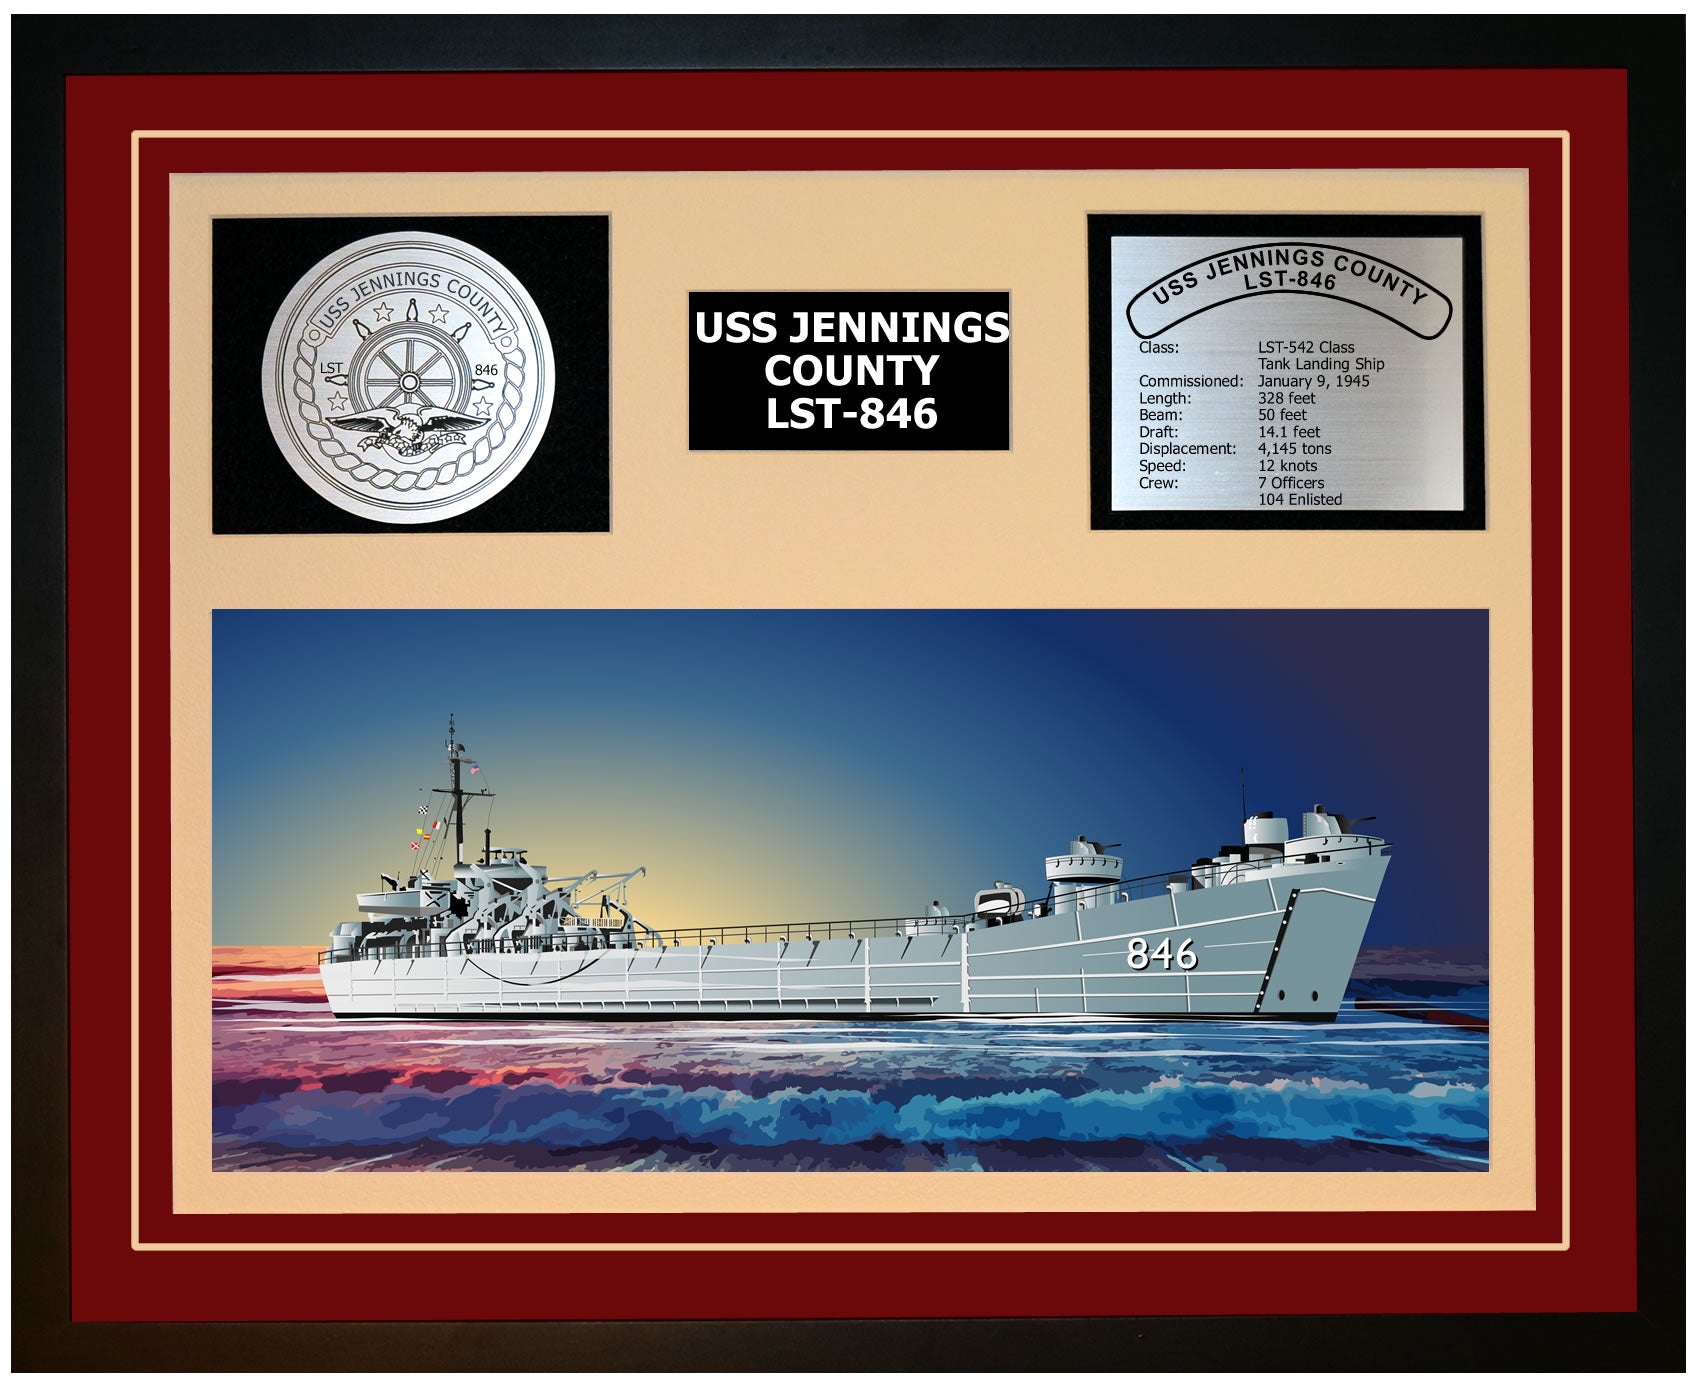 USS JENNINGS COUNTY LST-846 Framed Navy Ship Display Burgundy